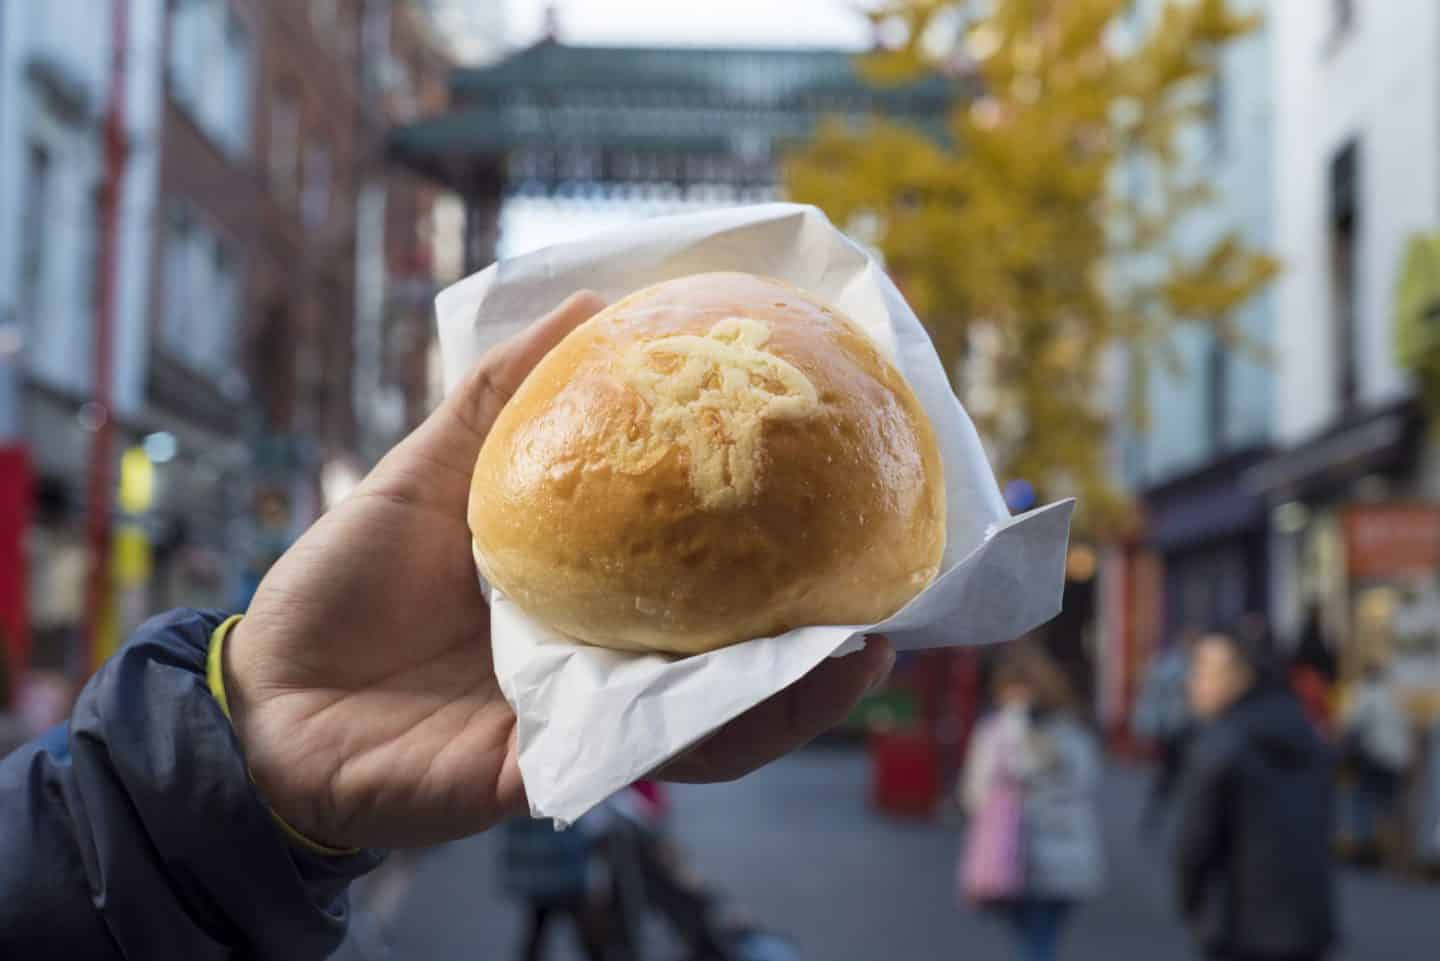 How to spend 24 hours eating the best food in Chinatown London